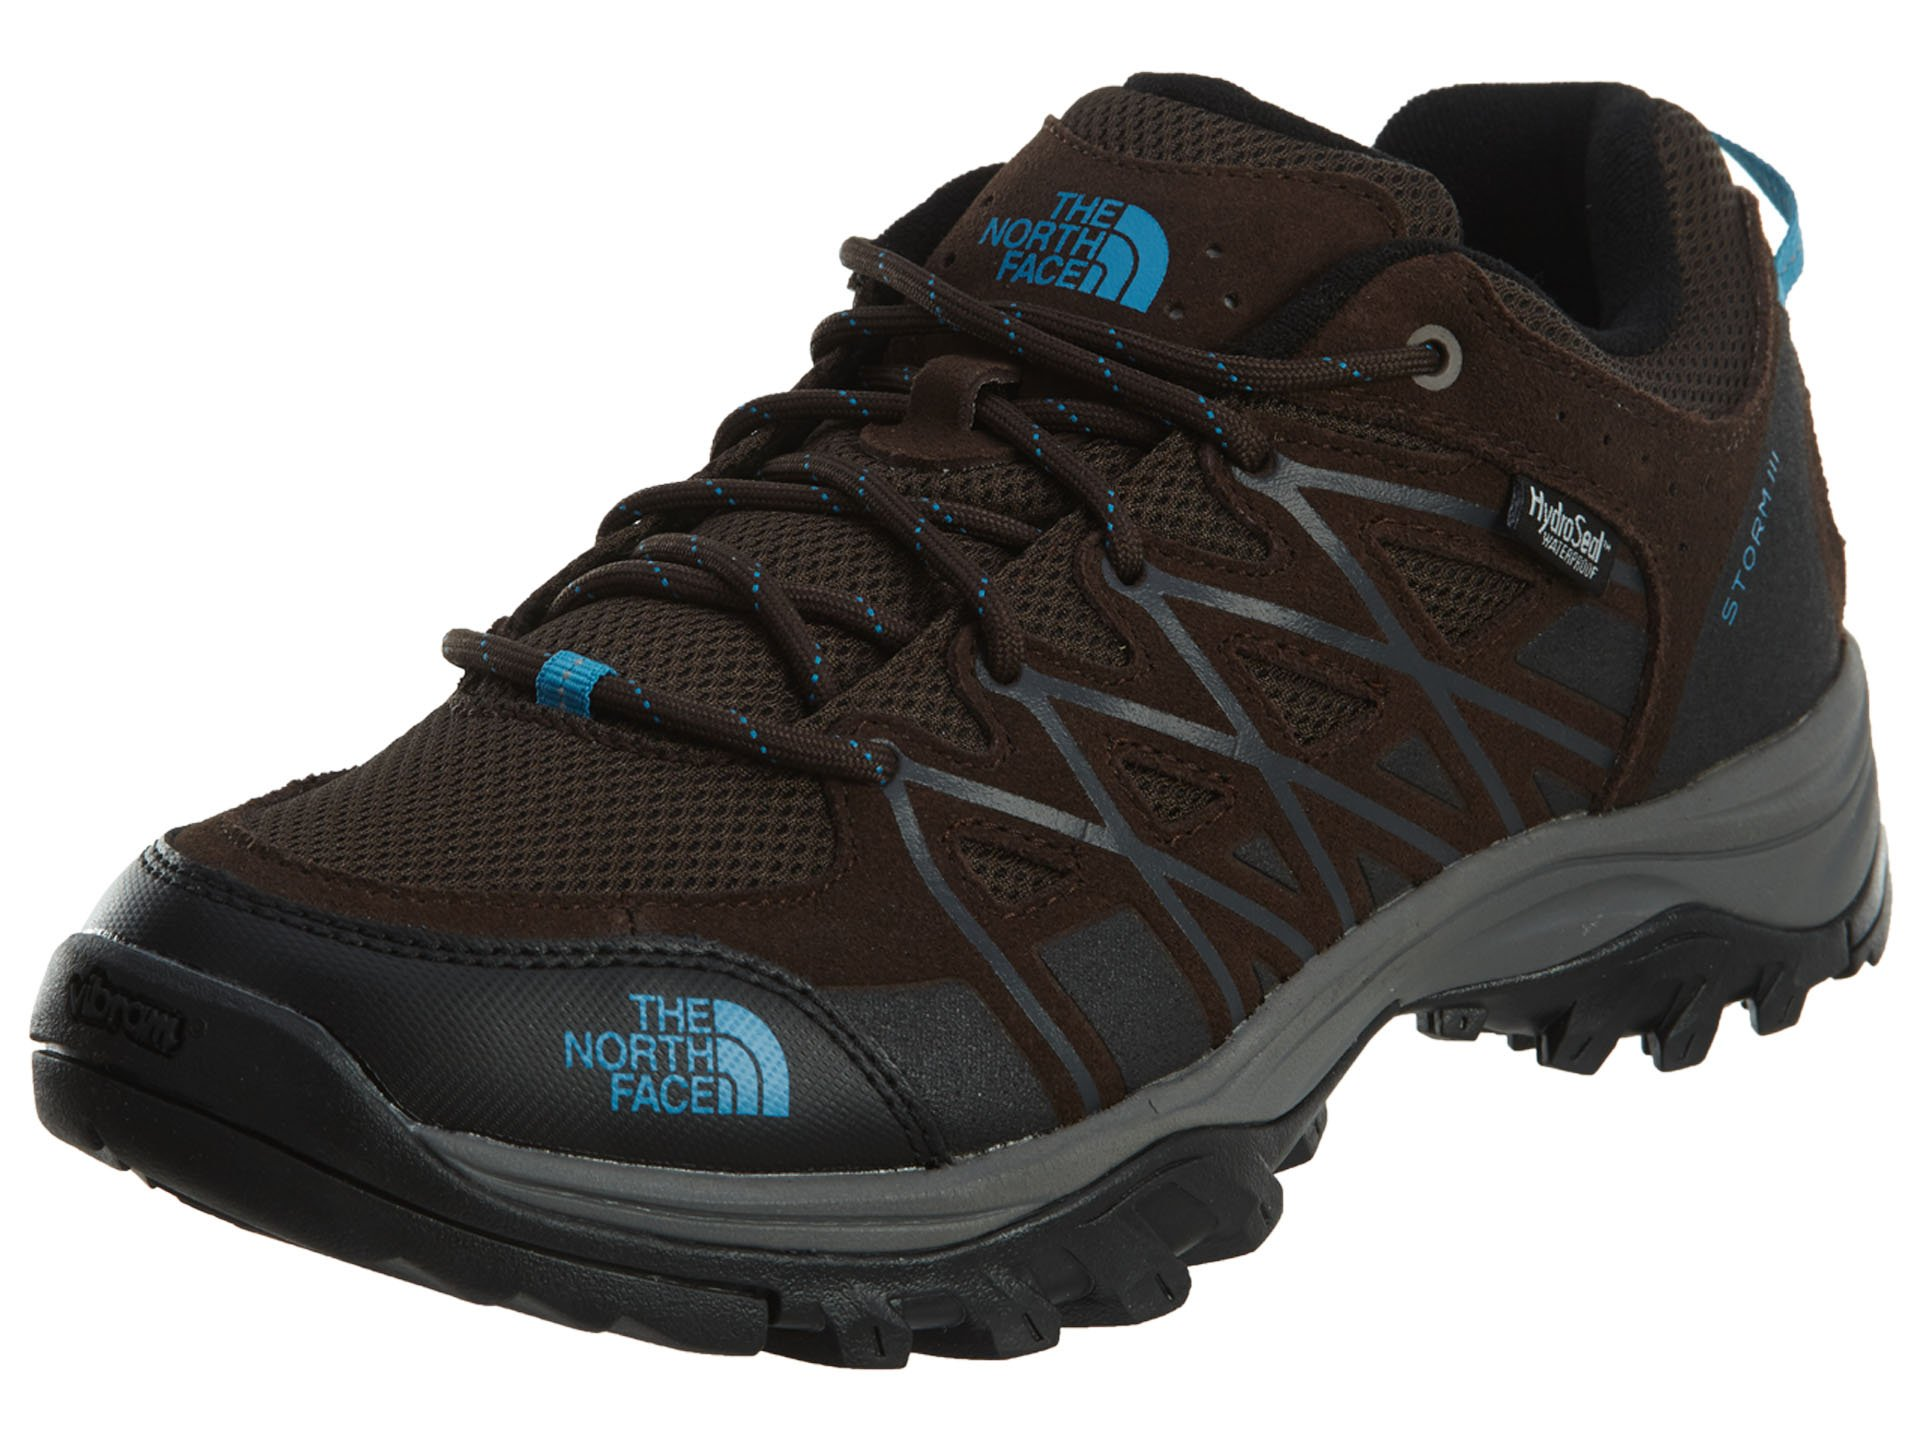 The North Face Storm Iii Wp Hiking Womens Style: A32ZF-TVT Size: 10 M US by The North Face